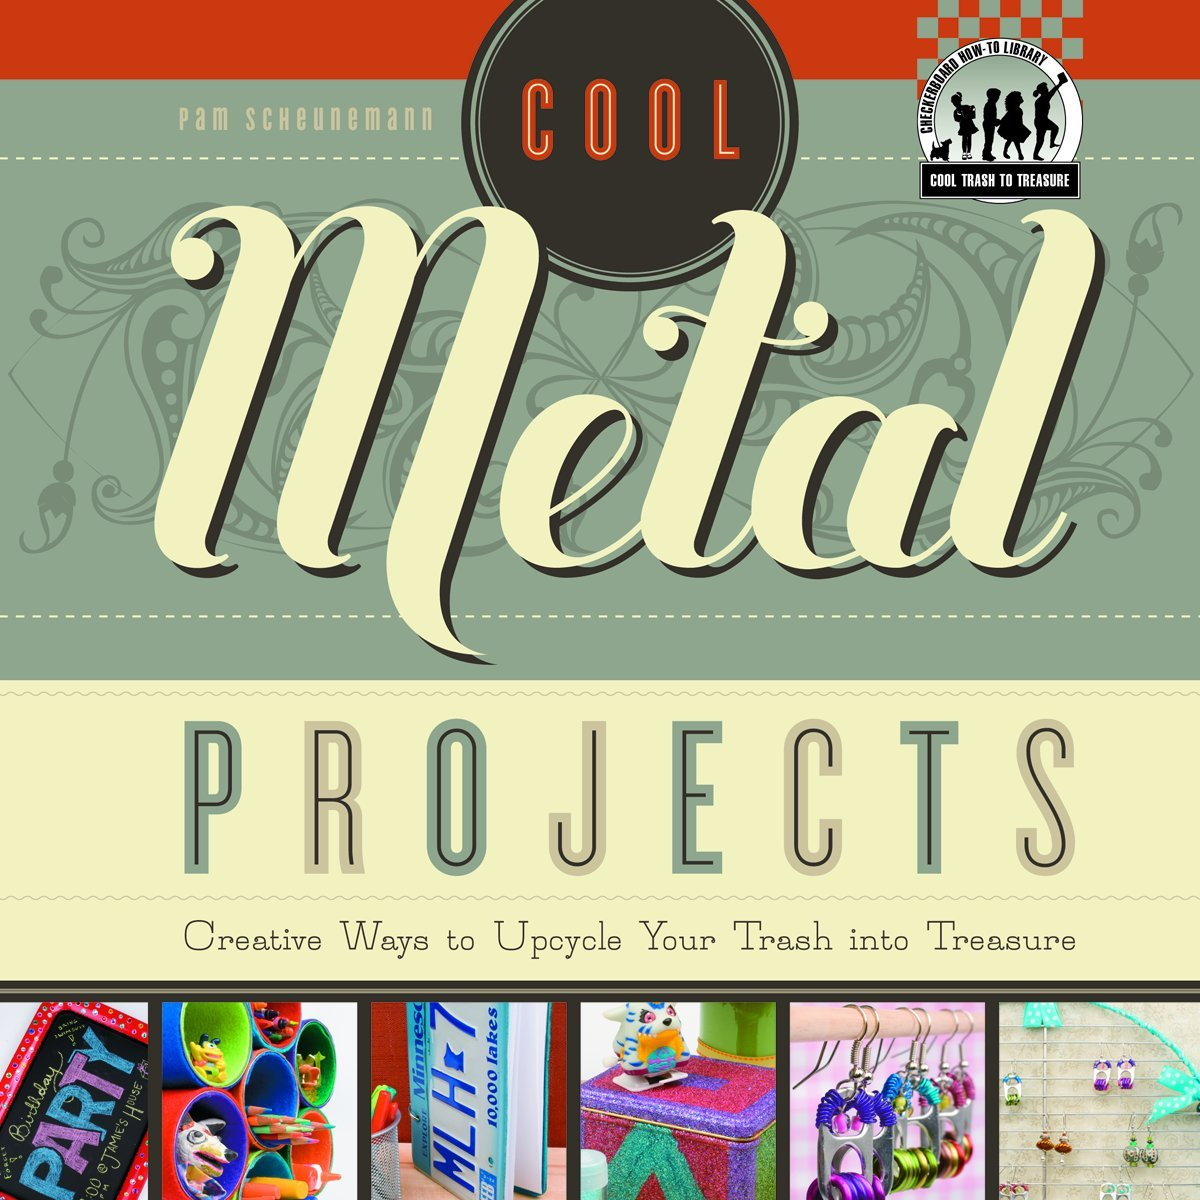 Cool Metal Projects: Creative Ways to Upcycle Your Trash Into Treasure (Checkerboard How-To Library: Cool Trash to Treasure (Library)) pdf epub